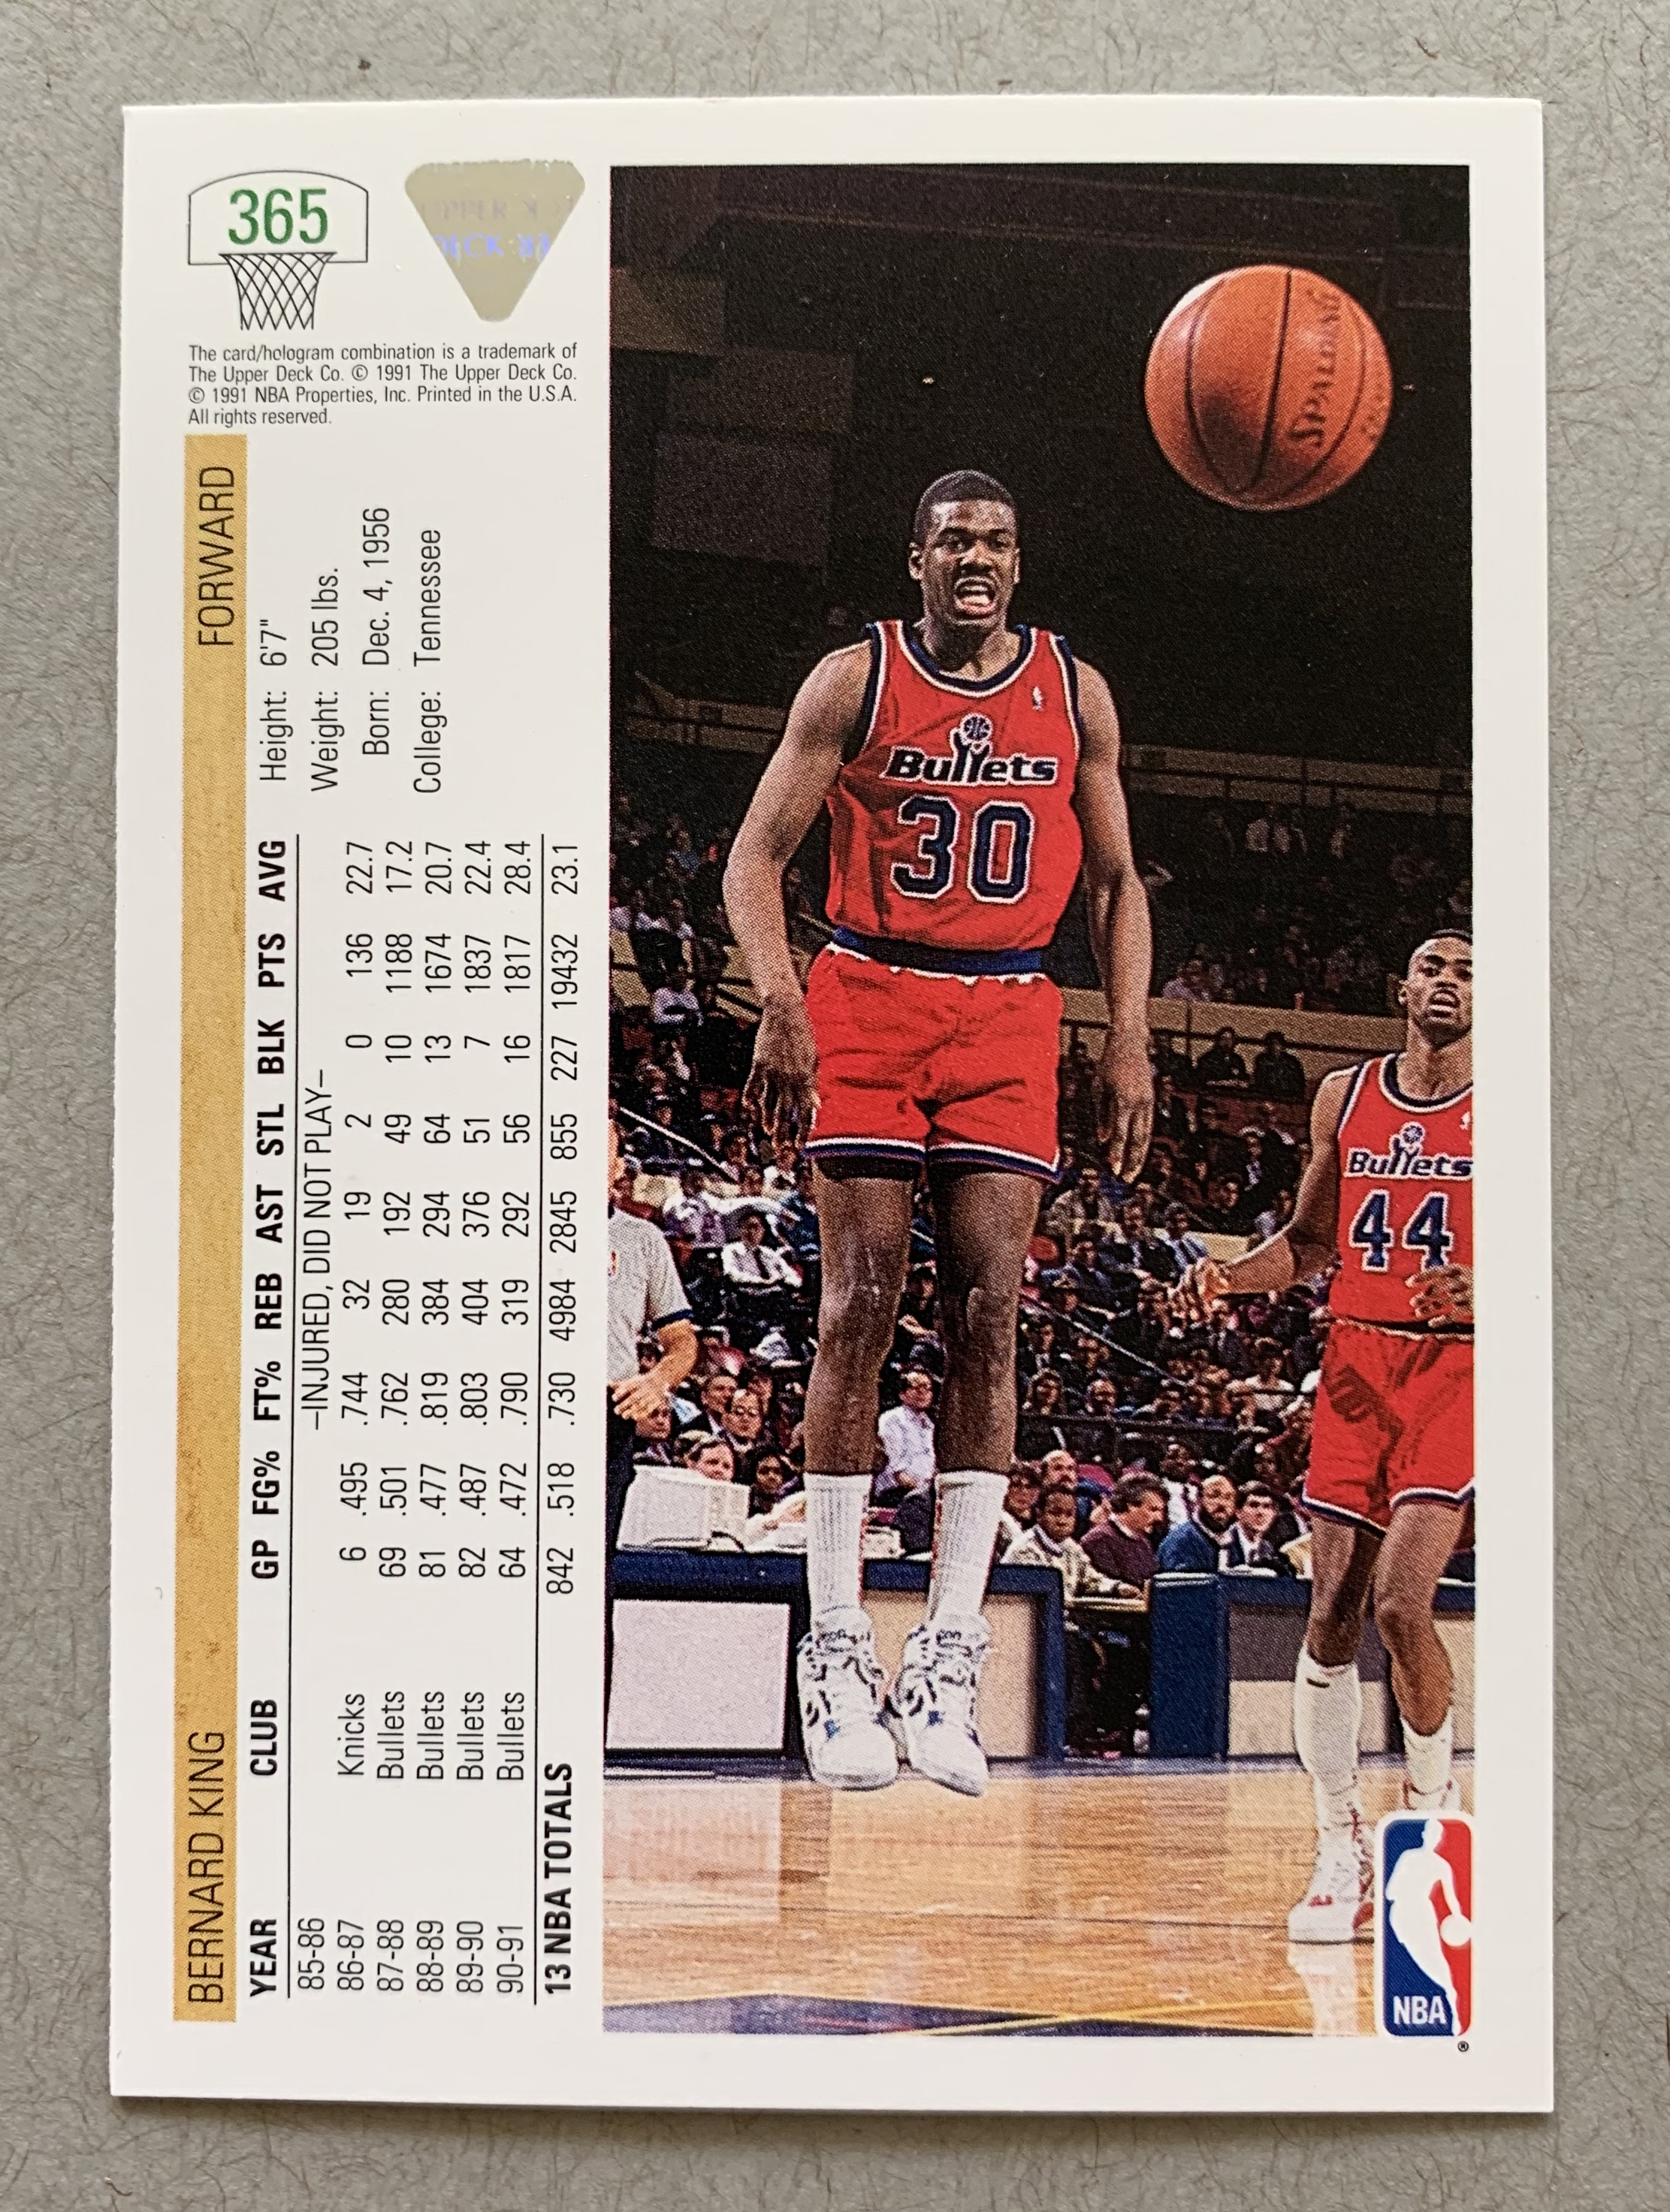 Every blog posts needs a picture. This felt like a good place to put a worthless card from the sports card boom. Nothing against Bernard King. He was a great NBA player. Incredible scorer. Why not show the back of a worthless card while I'm at it? But, you know what, the back of this card is pretty cool too. Great photo. Don't get that today, even when buying $1000 packs. The Upper Deck hologram is there too, just so you know for sure that it's not counterfeit. Big bucks at stake in the counterfeit 1990-91 Upper Deck Bernard King market. RIP Washington Bullets, reincarnated as Wizards.